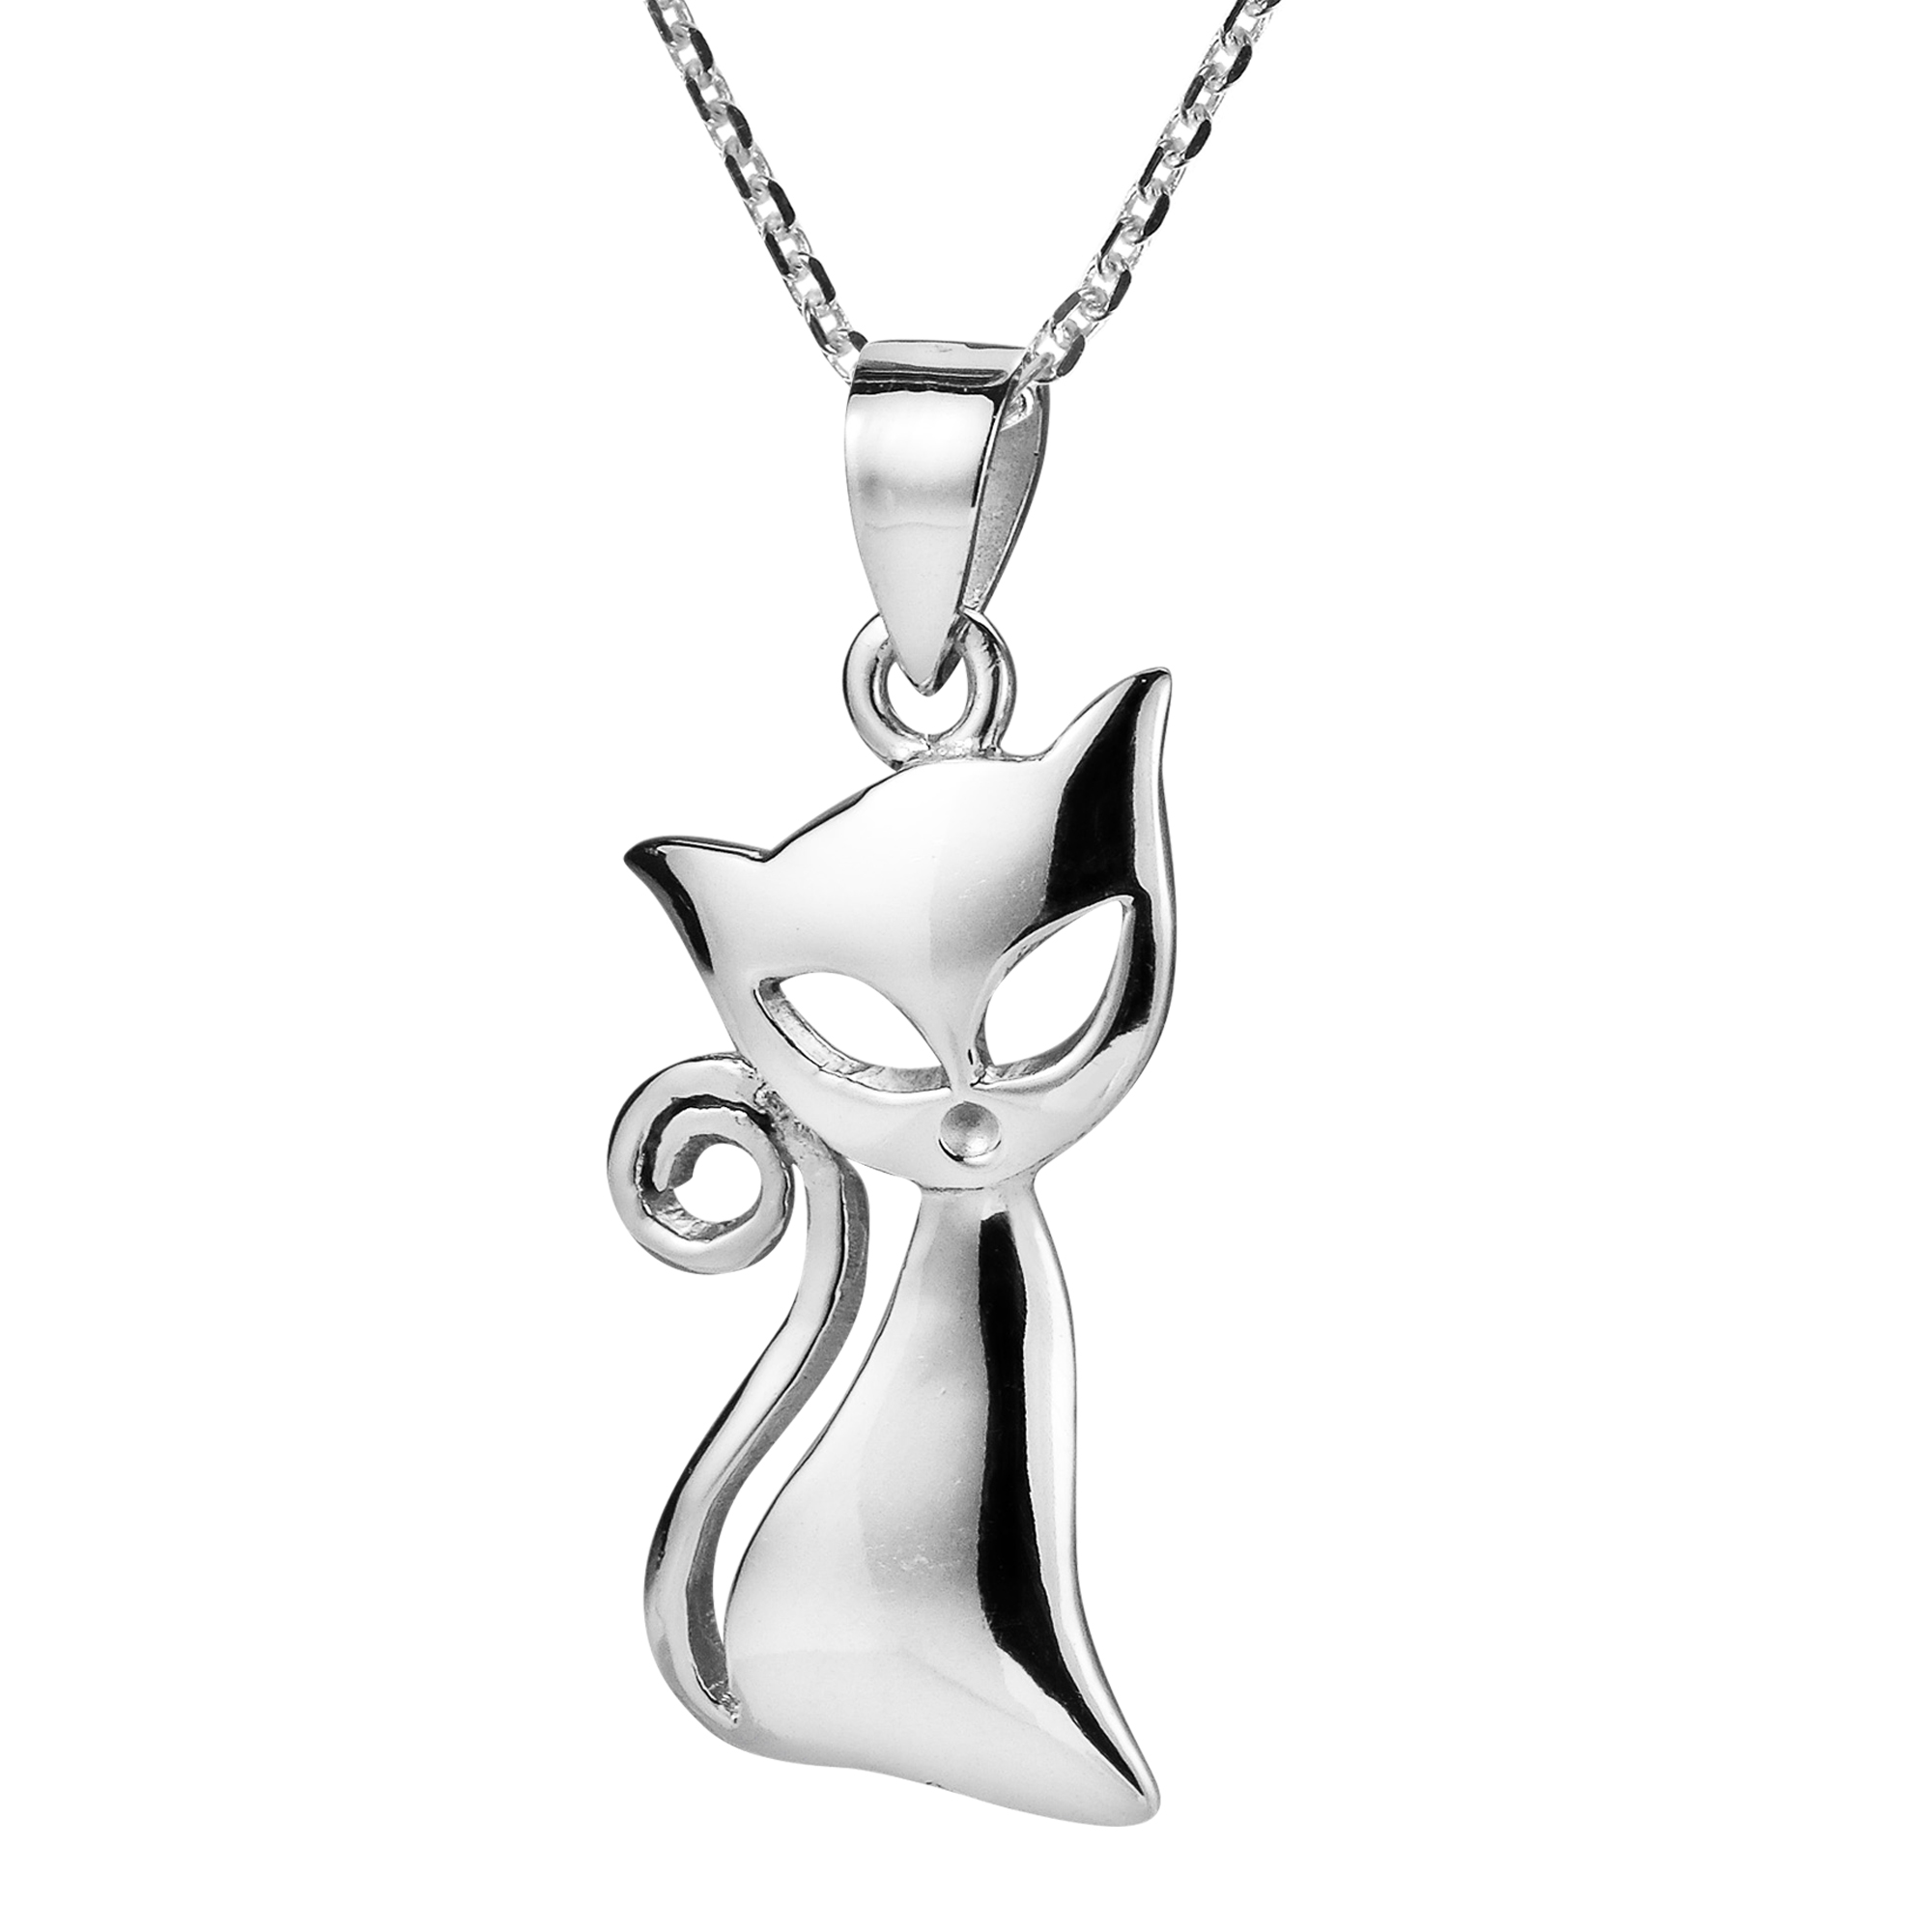 unique pendant times from silver zilvera modern to egypt jewellery sterling cat jewelry gallery